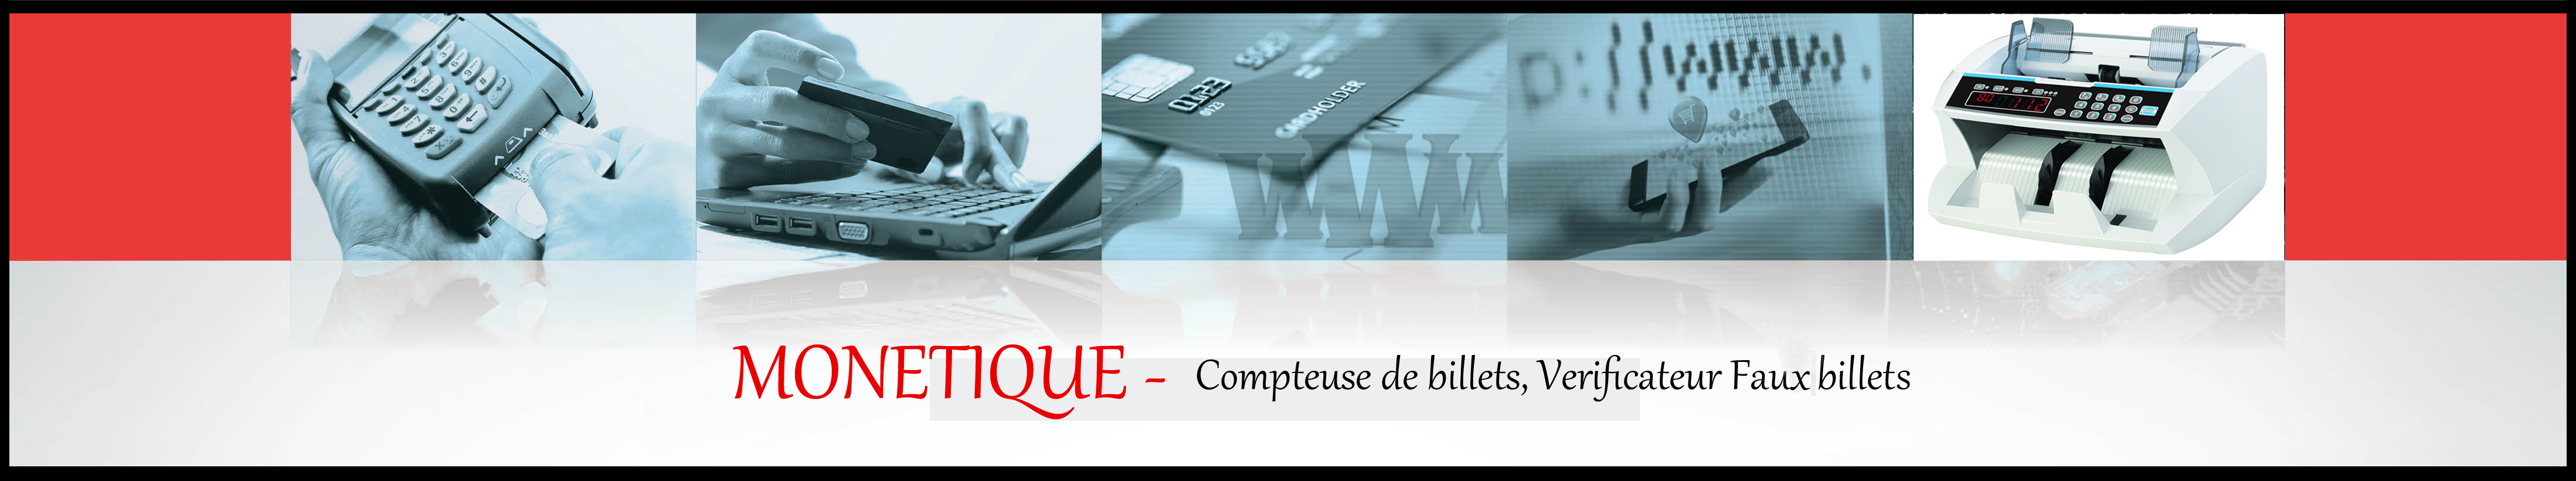 Compteuse billets tunisie